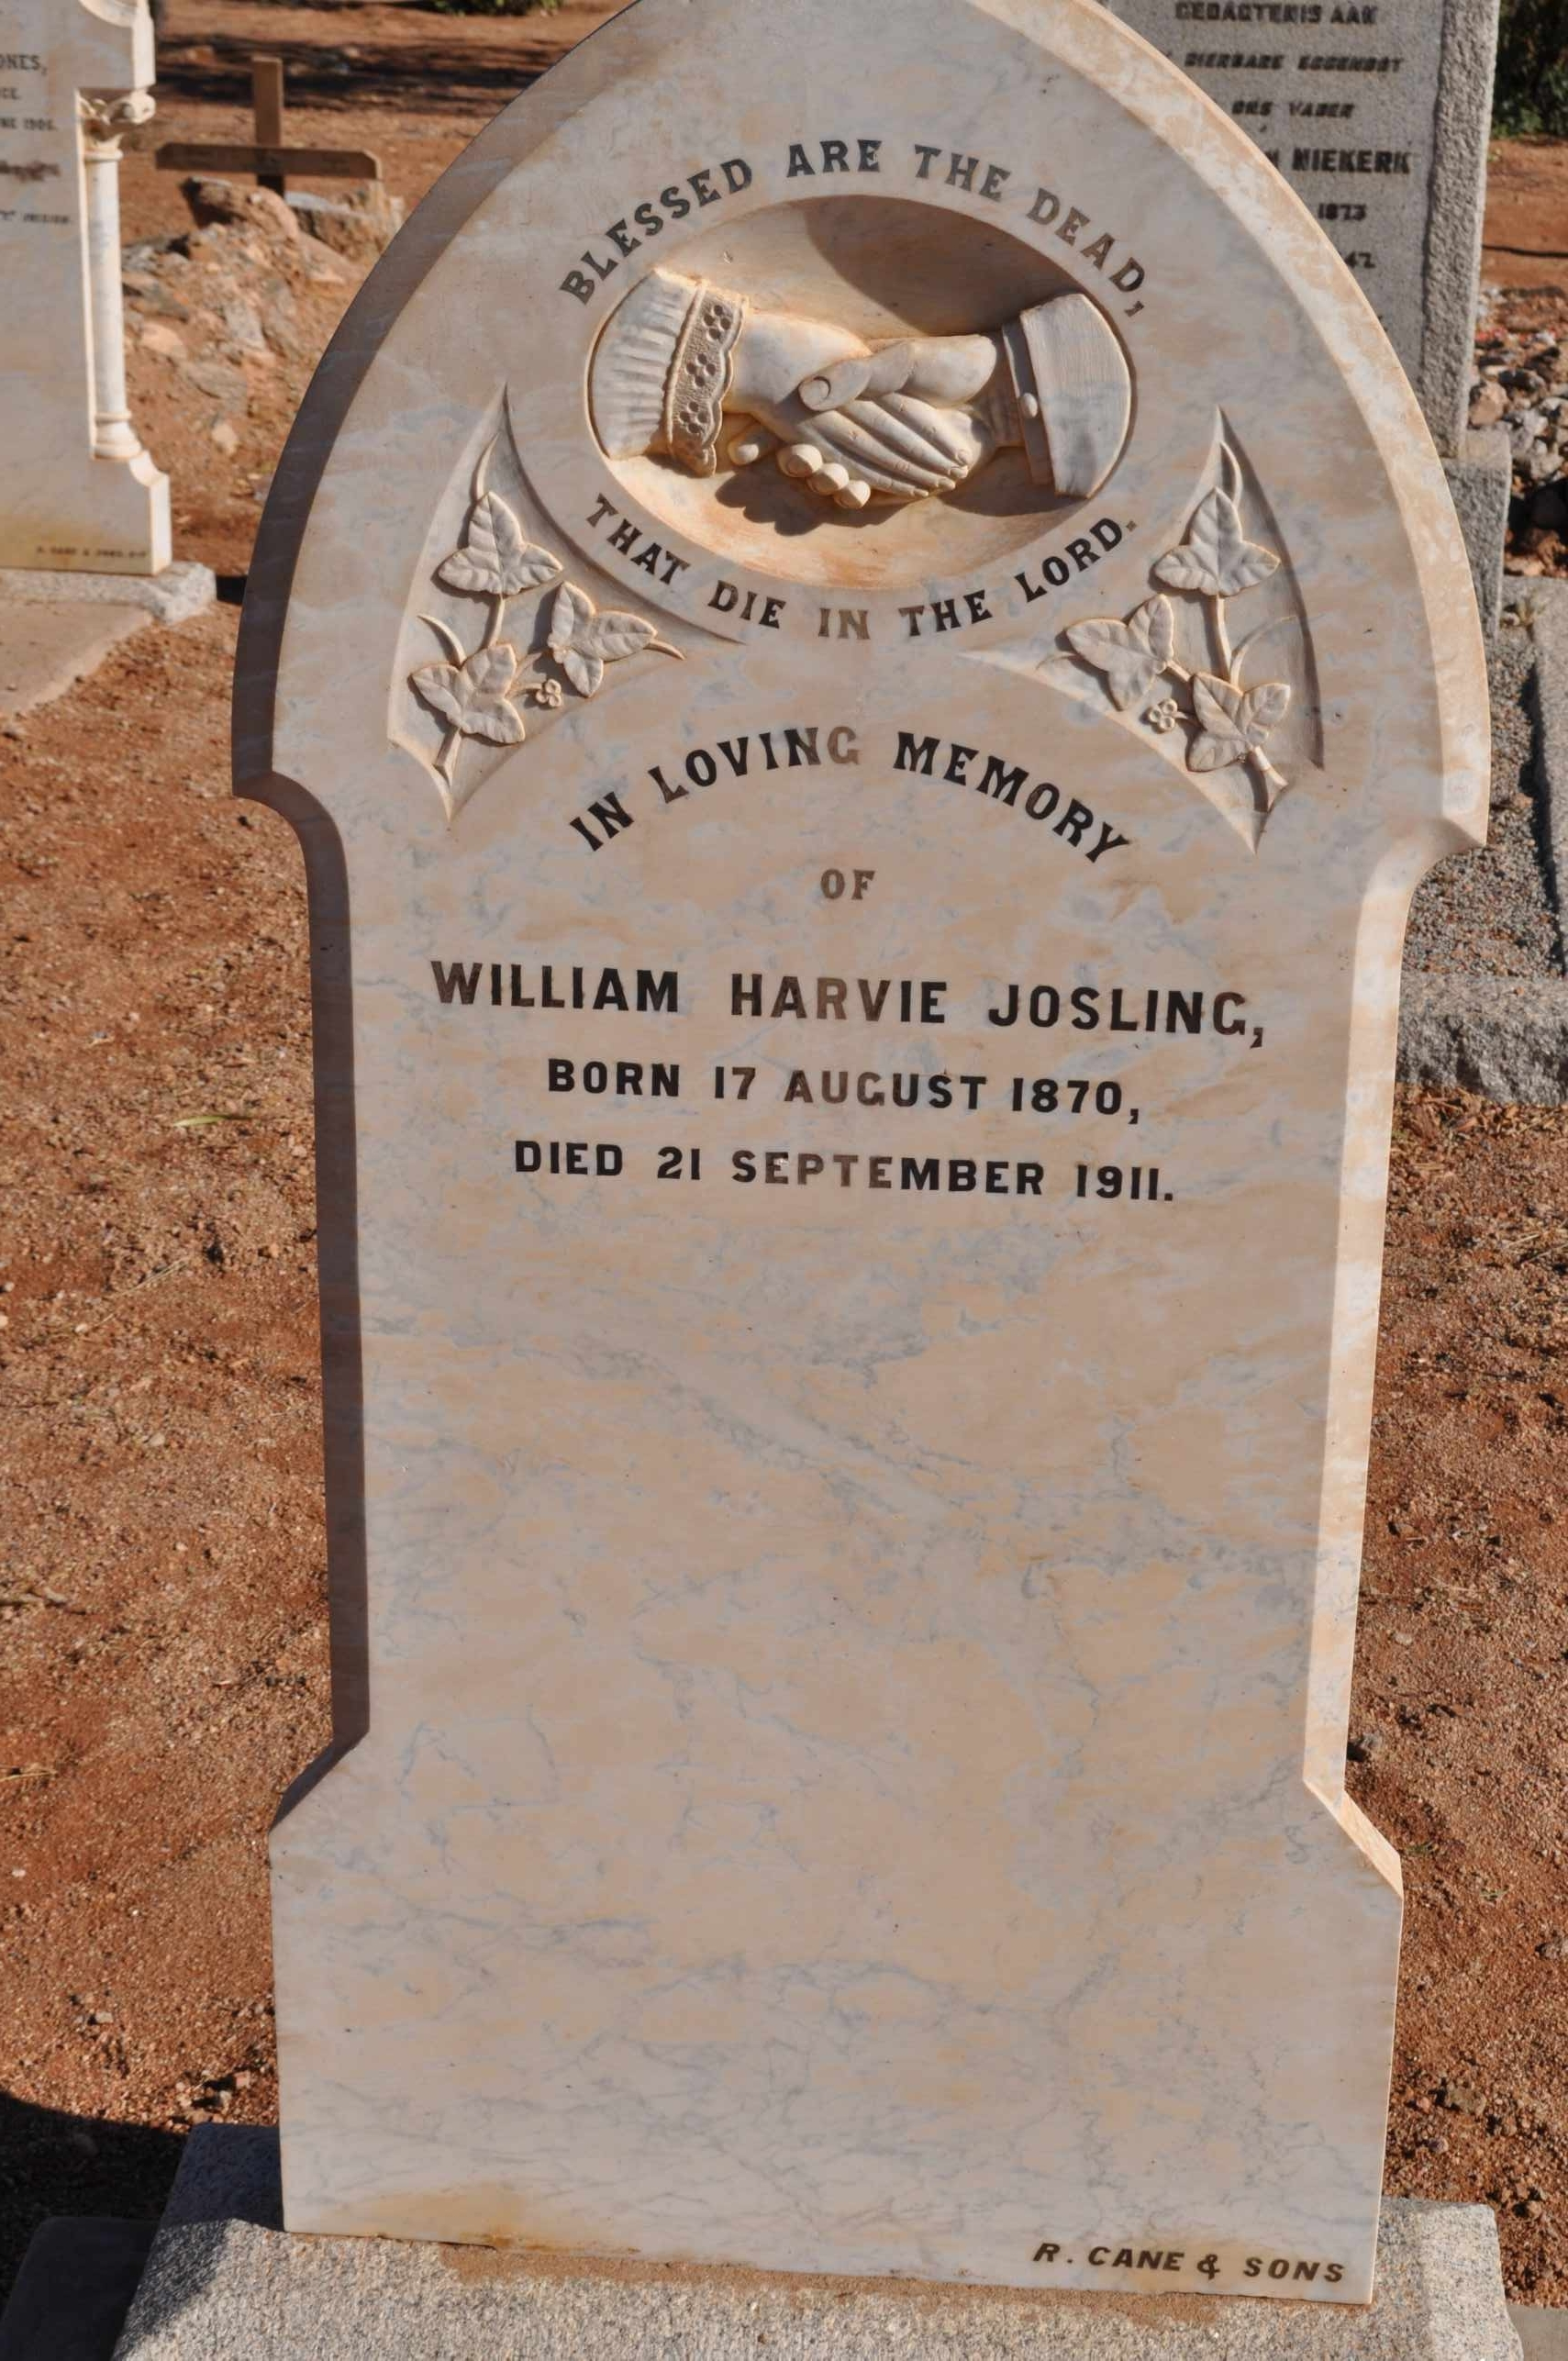 Josling, William Harvie